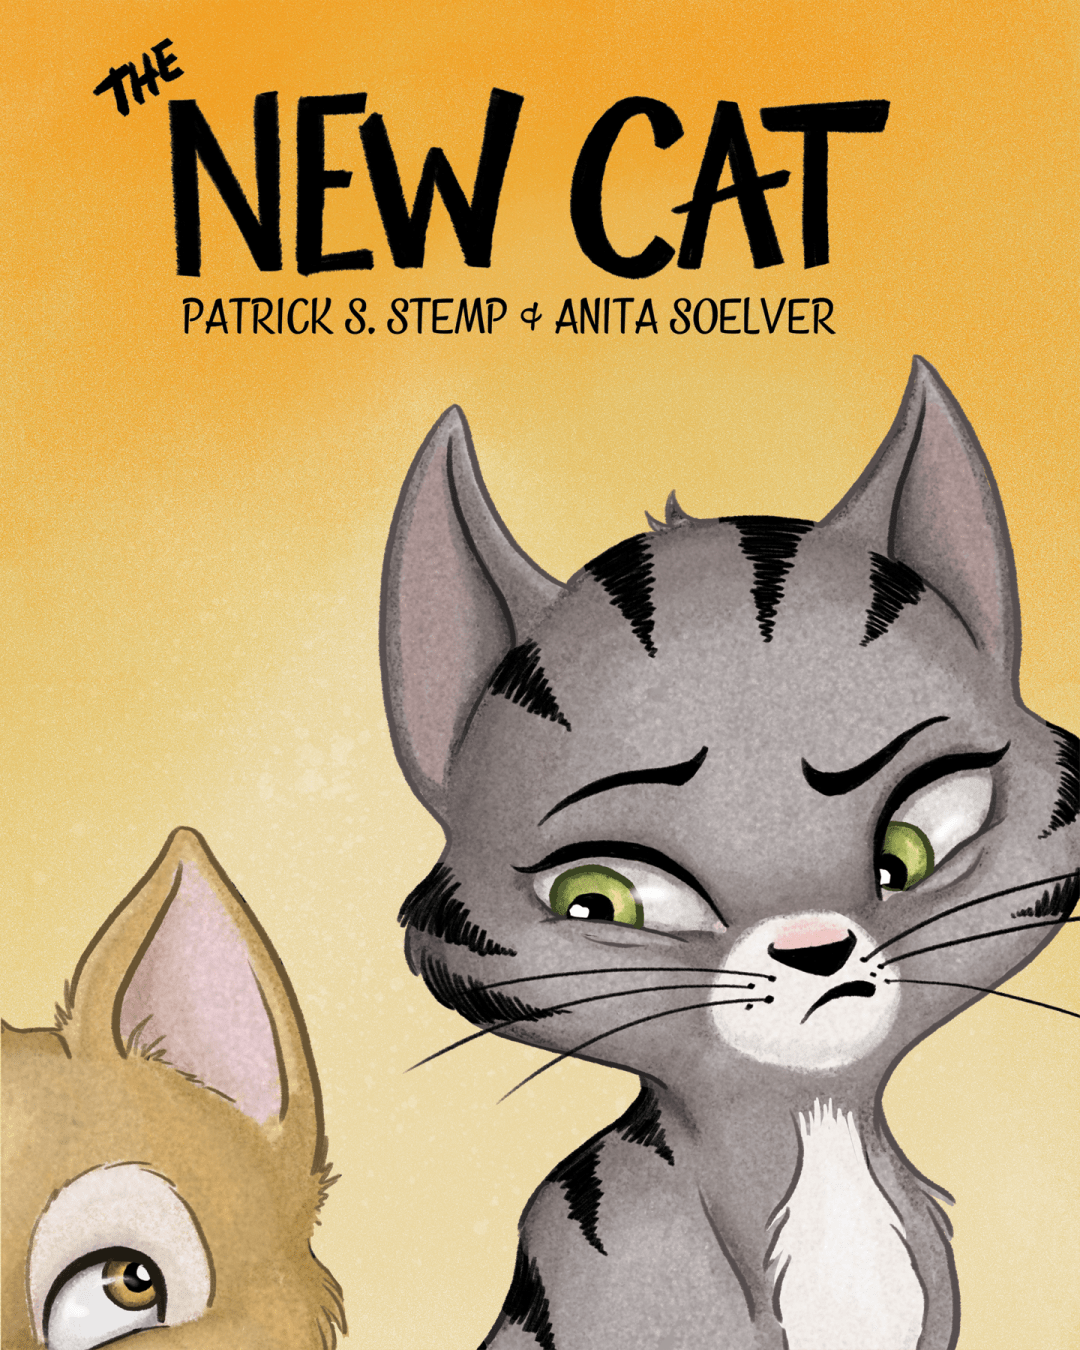 The New Cat by Patrick S. Stemp & Anita Soelver